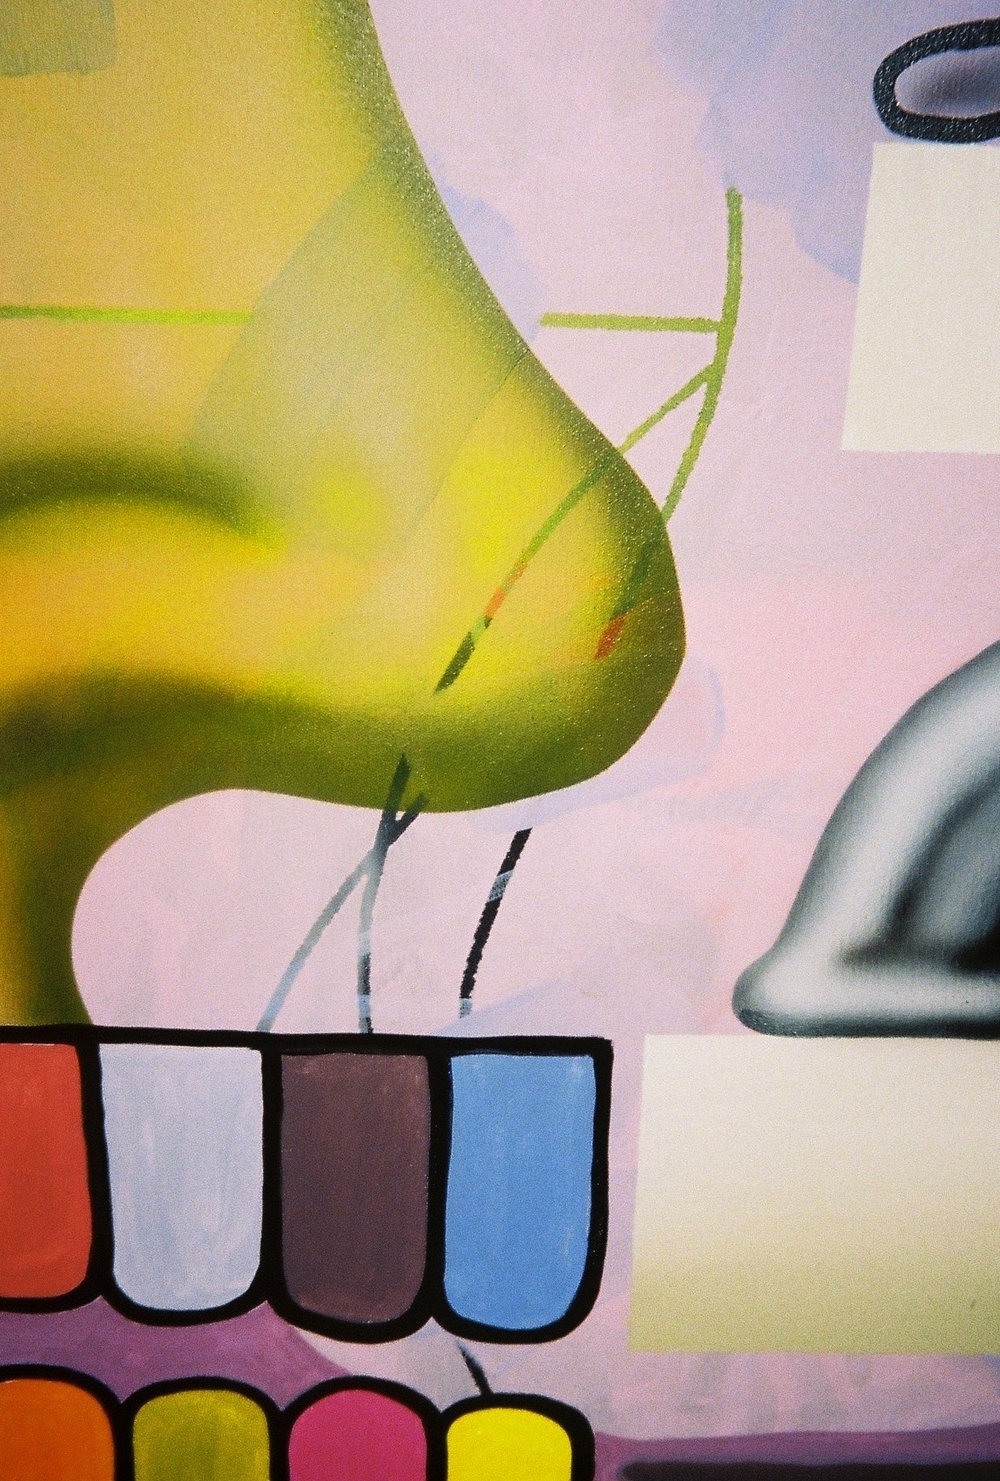 Morgan Wills,Slinky, oil and acrylic on canvas (detail)| Photography by Delilah Olson -